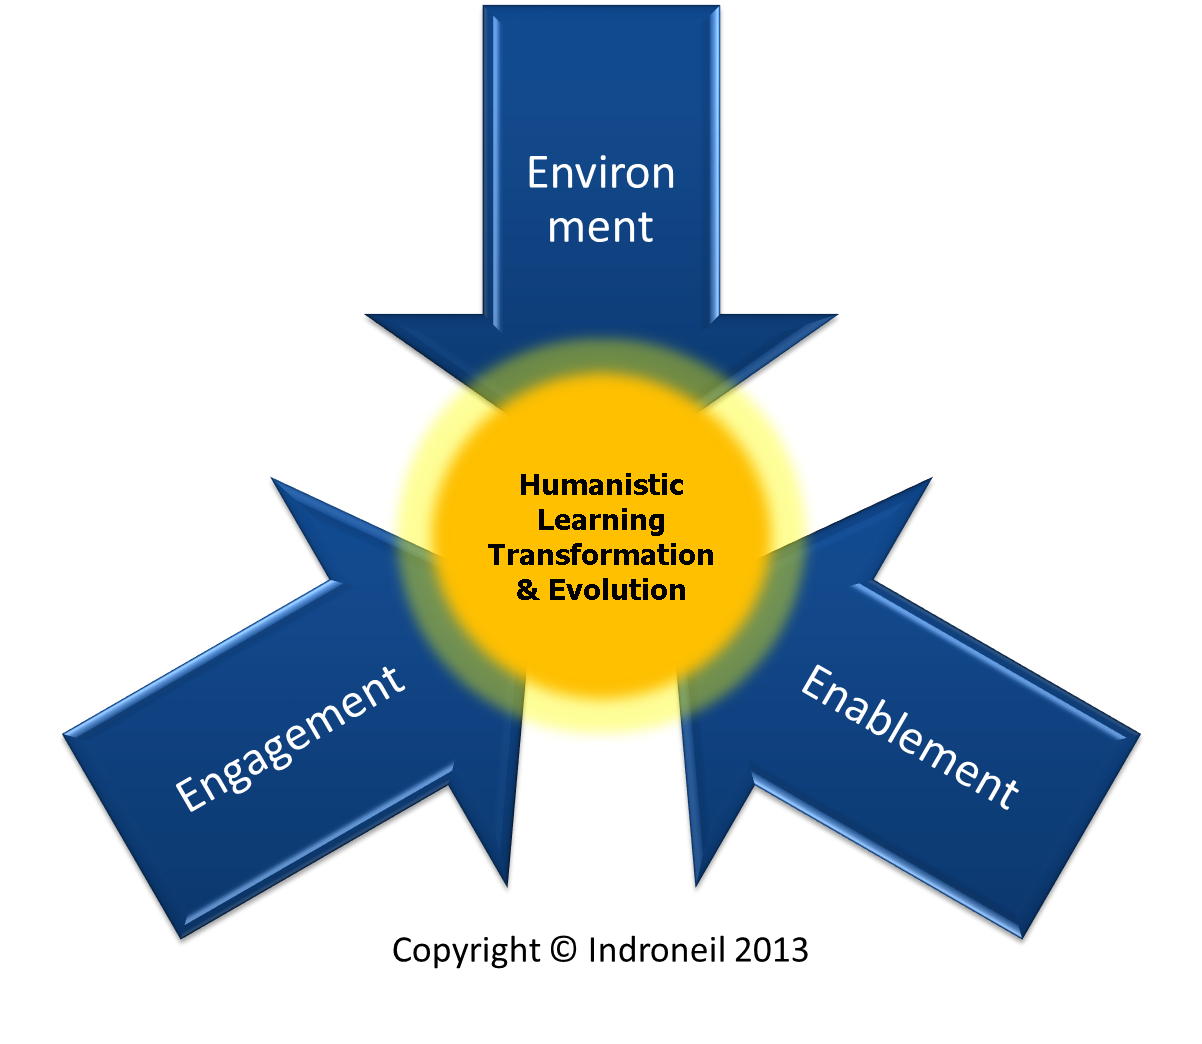 3 Es of Learning